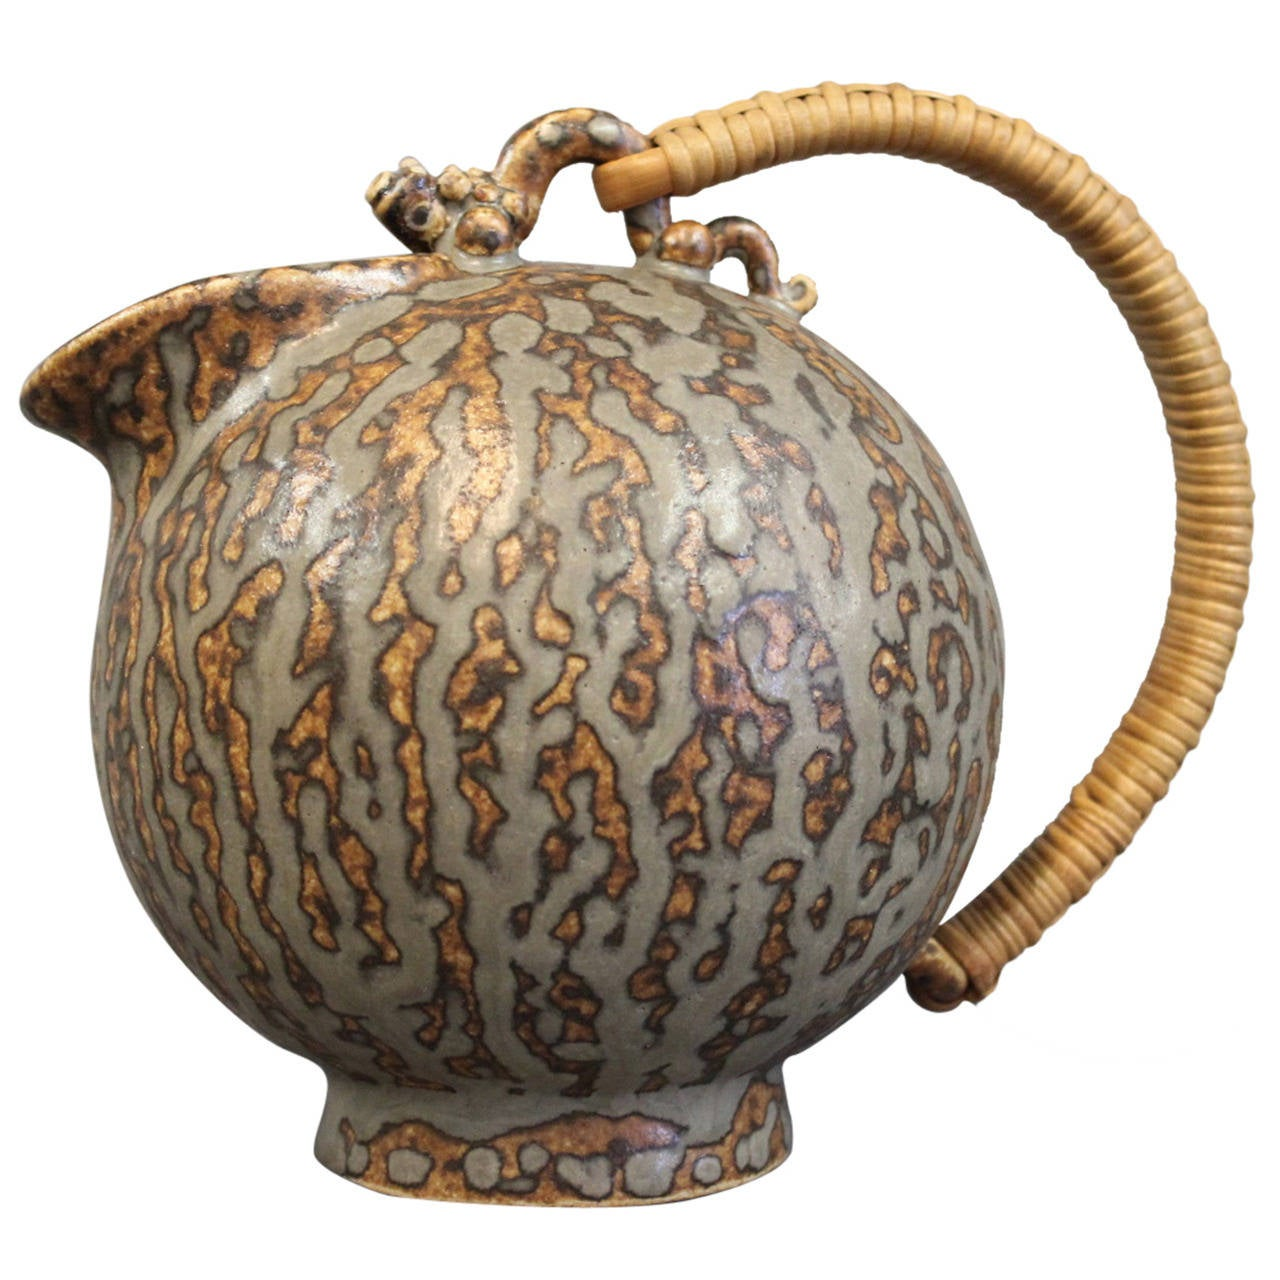 Arne Bang Jug in Stoneware Number 151, circa 1940-1960